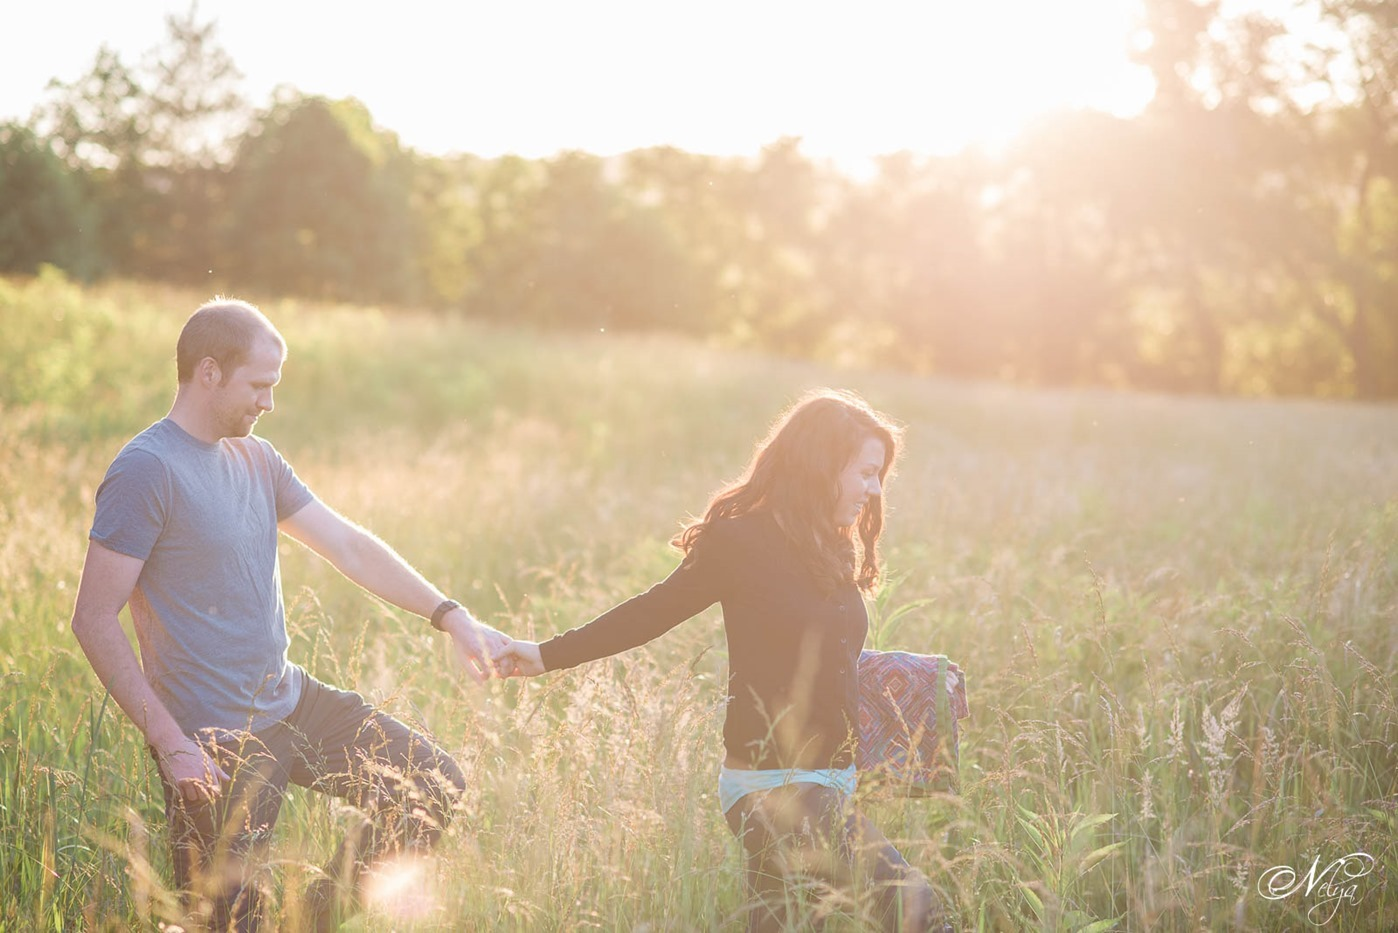 cades-cove-spring-engagement-2688_thumb.jpg